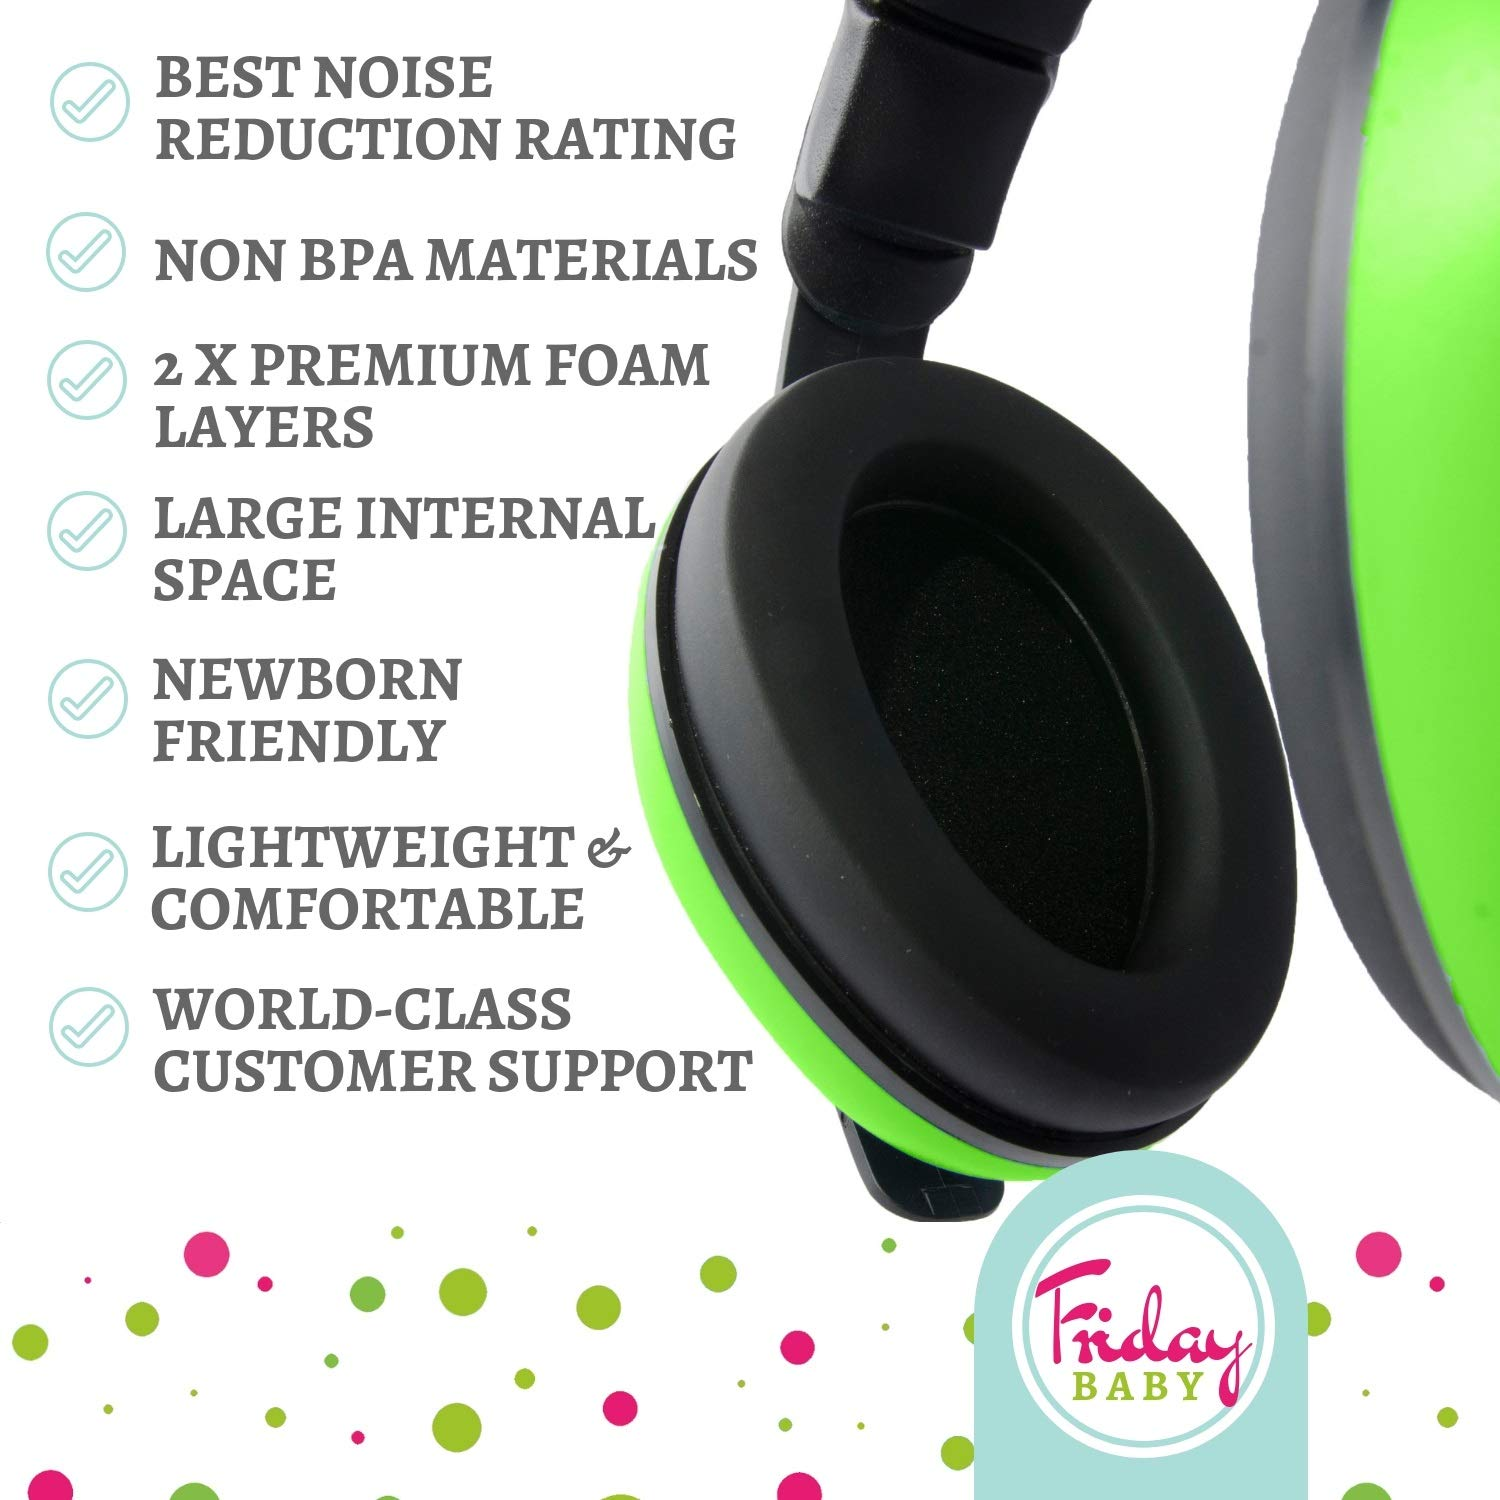 Baby Ear Protection - Comfortable and Adjustable Premium Noise Cancelling Headphones for Babies, Infants, Newborns (0-2+ Years) | Best Baby Headphones Noise Reduction for Concerts, Fireworks & Travels by Friday Baby (Image #8)